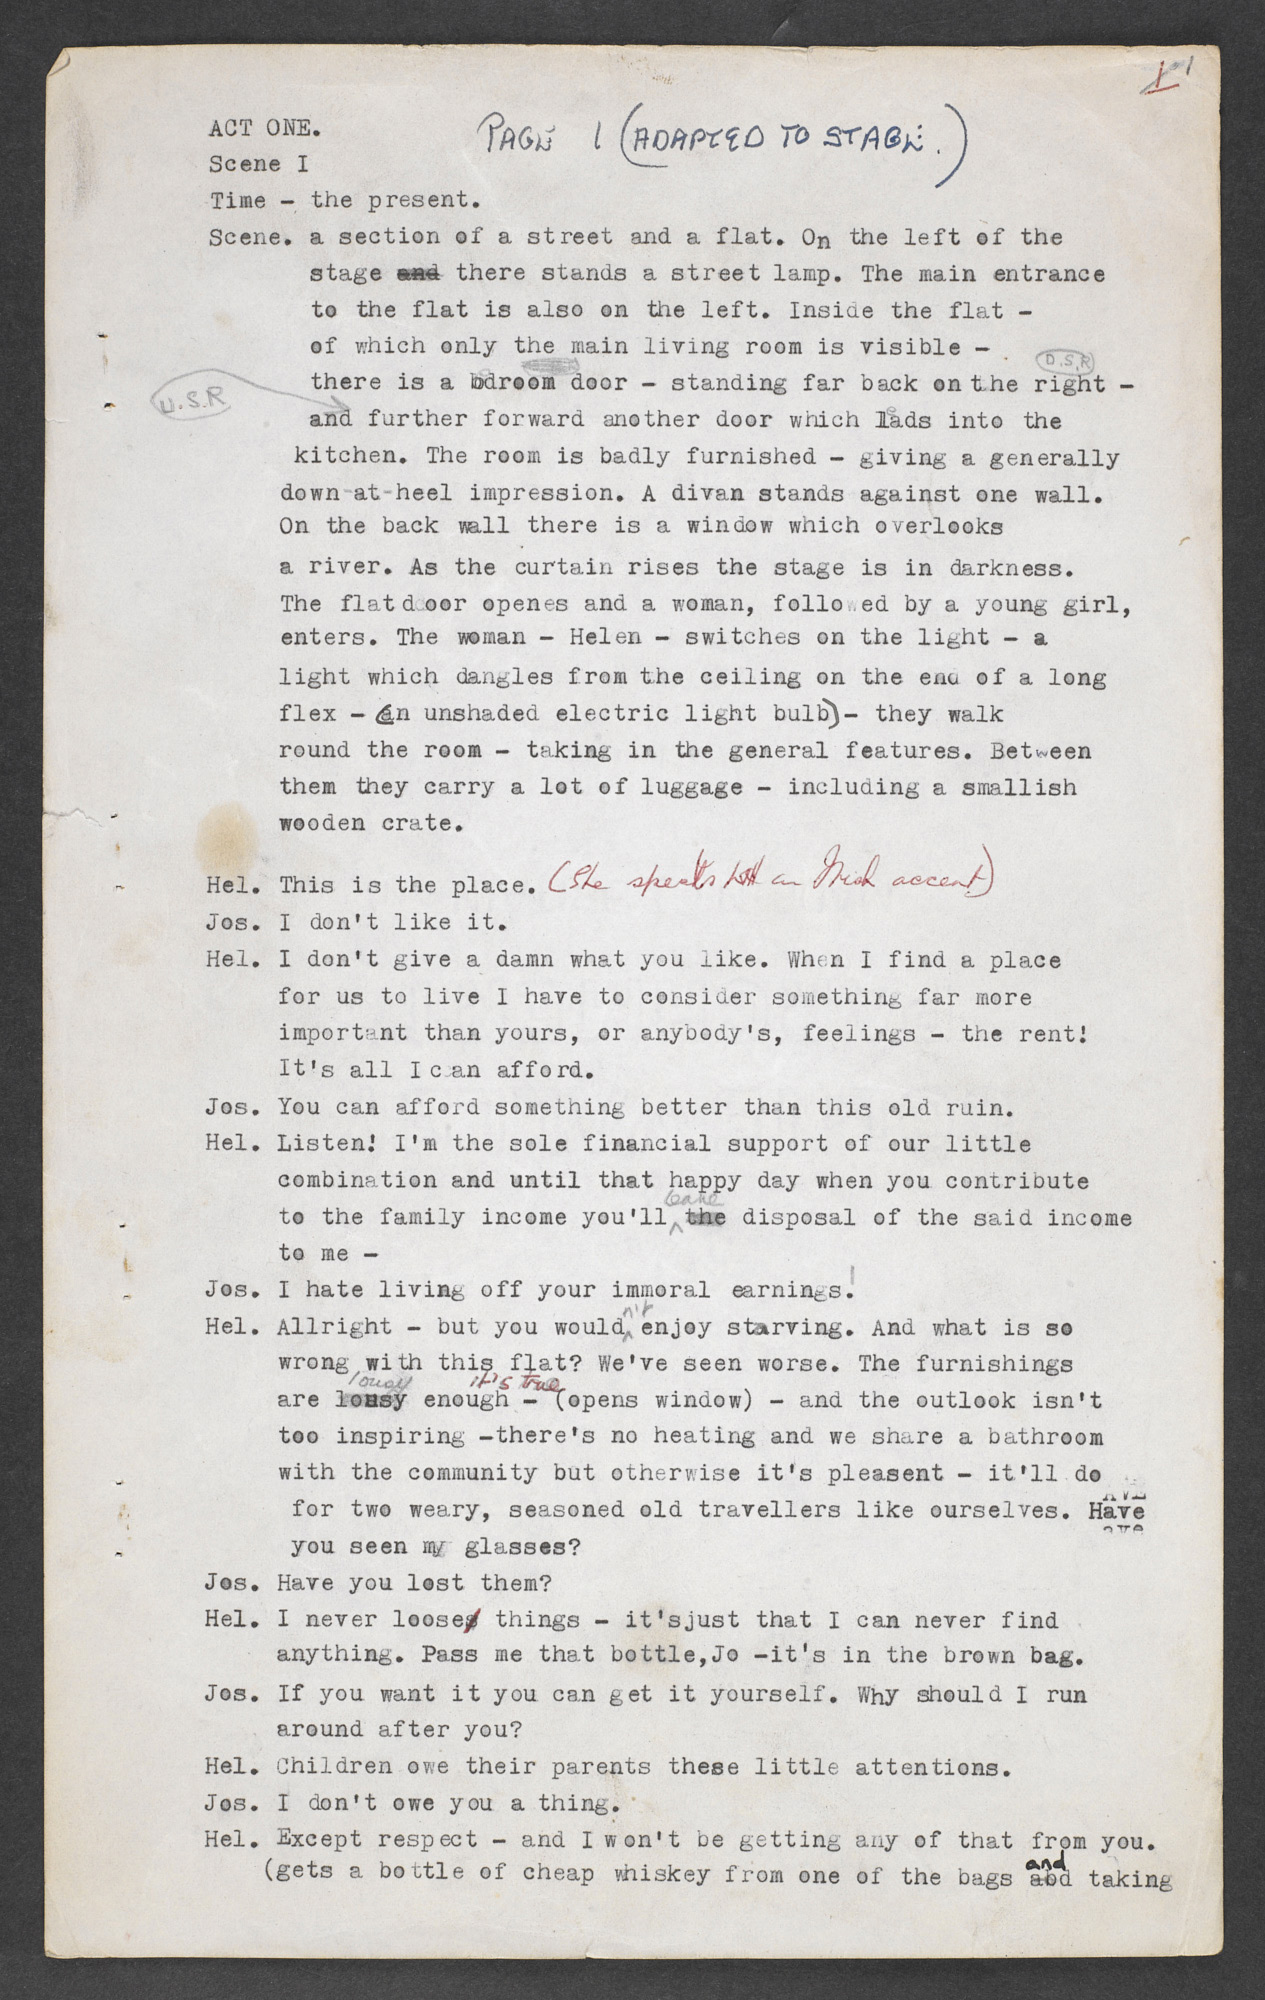 Manuscript of A Taste of Honey by Shelagh Delaney